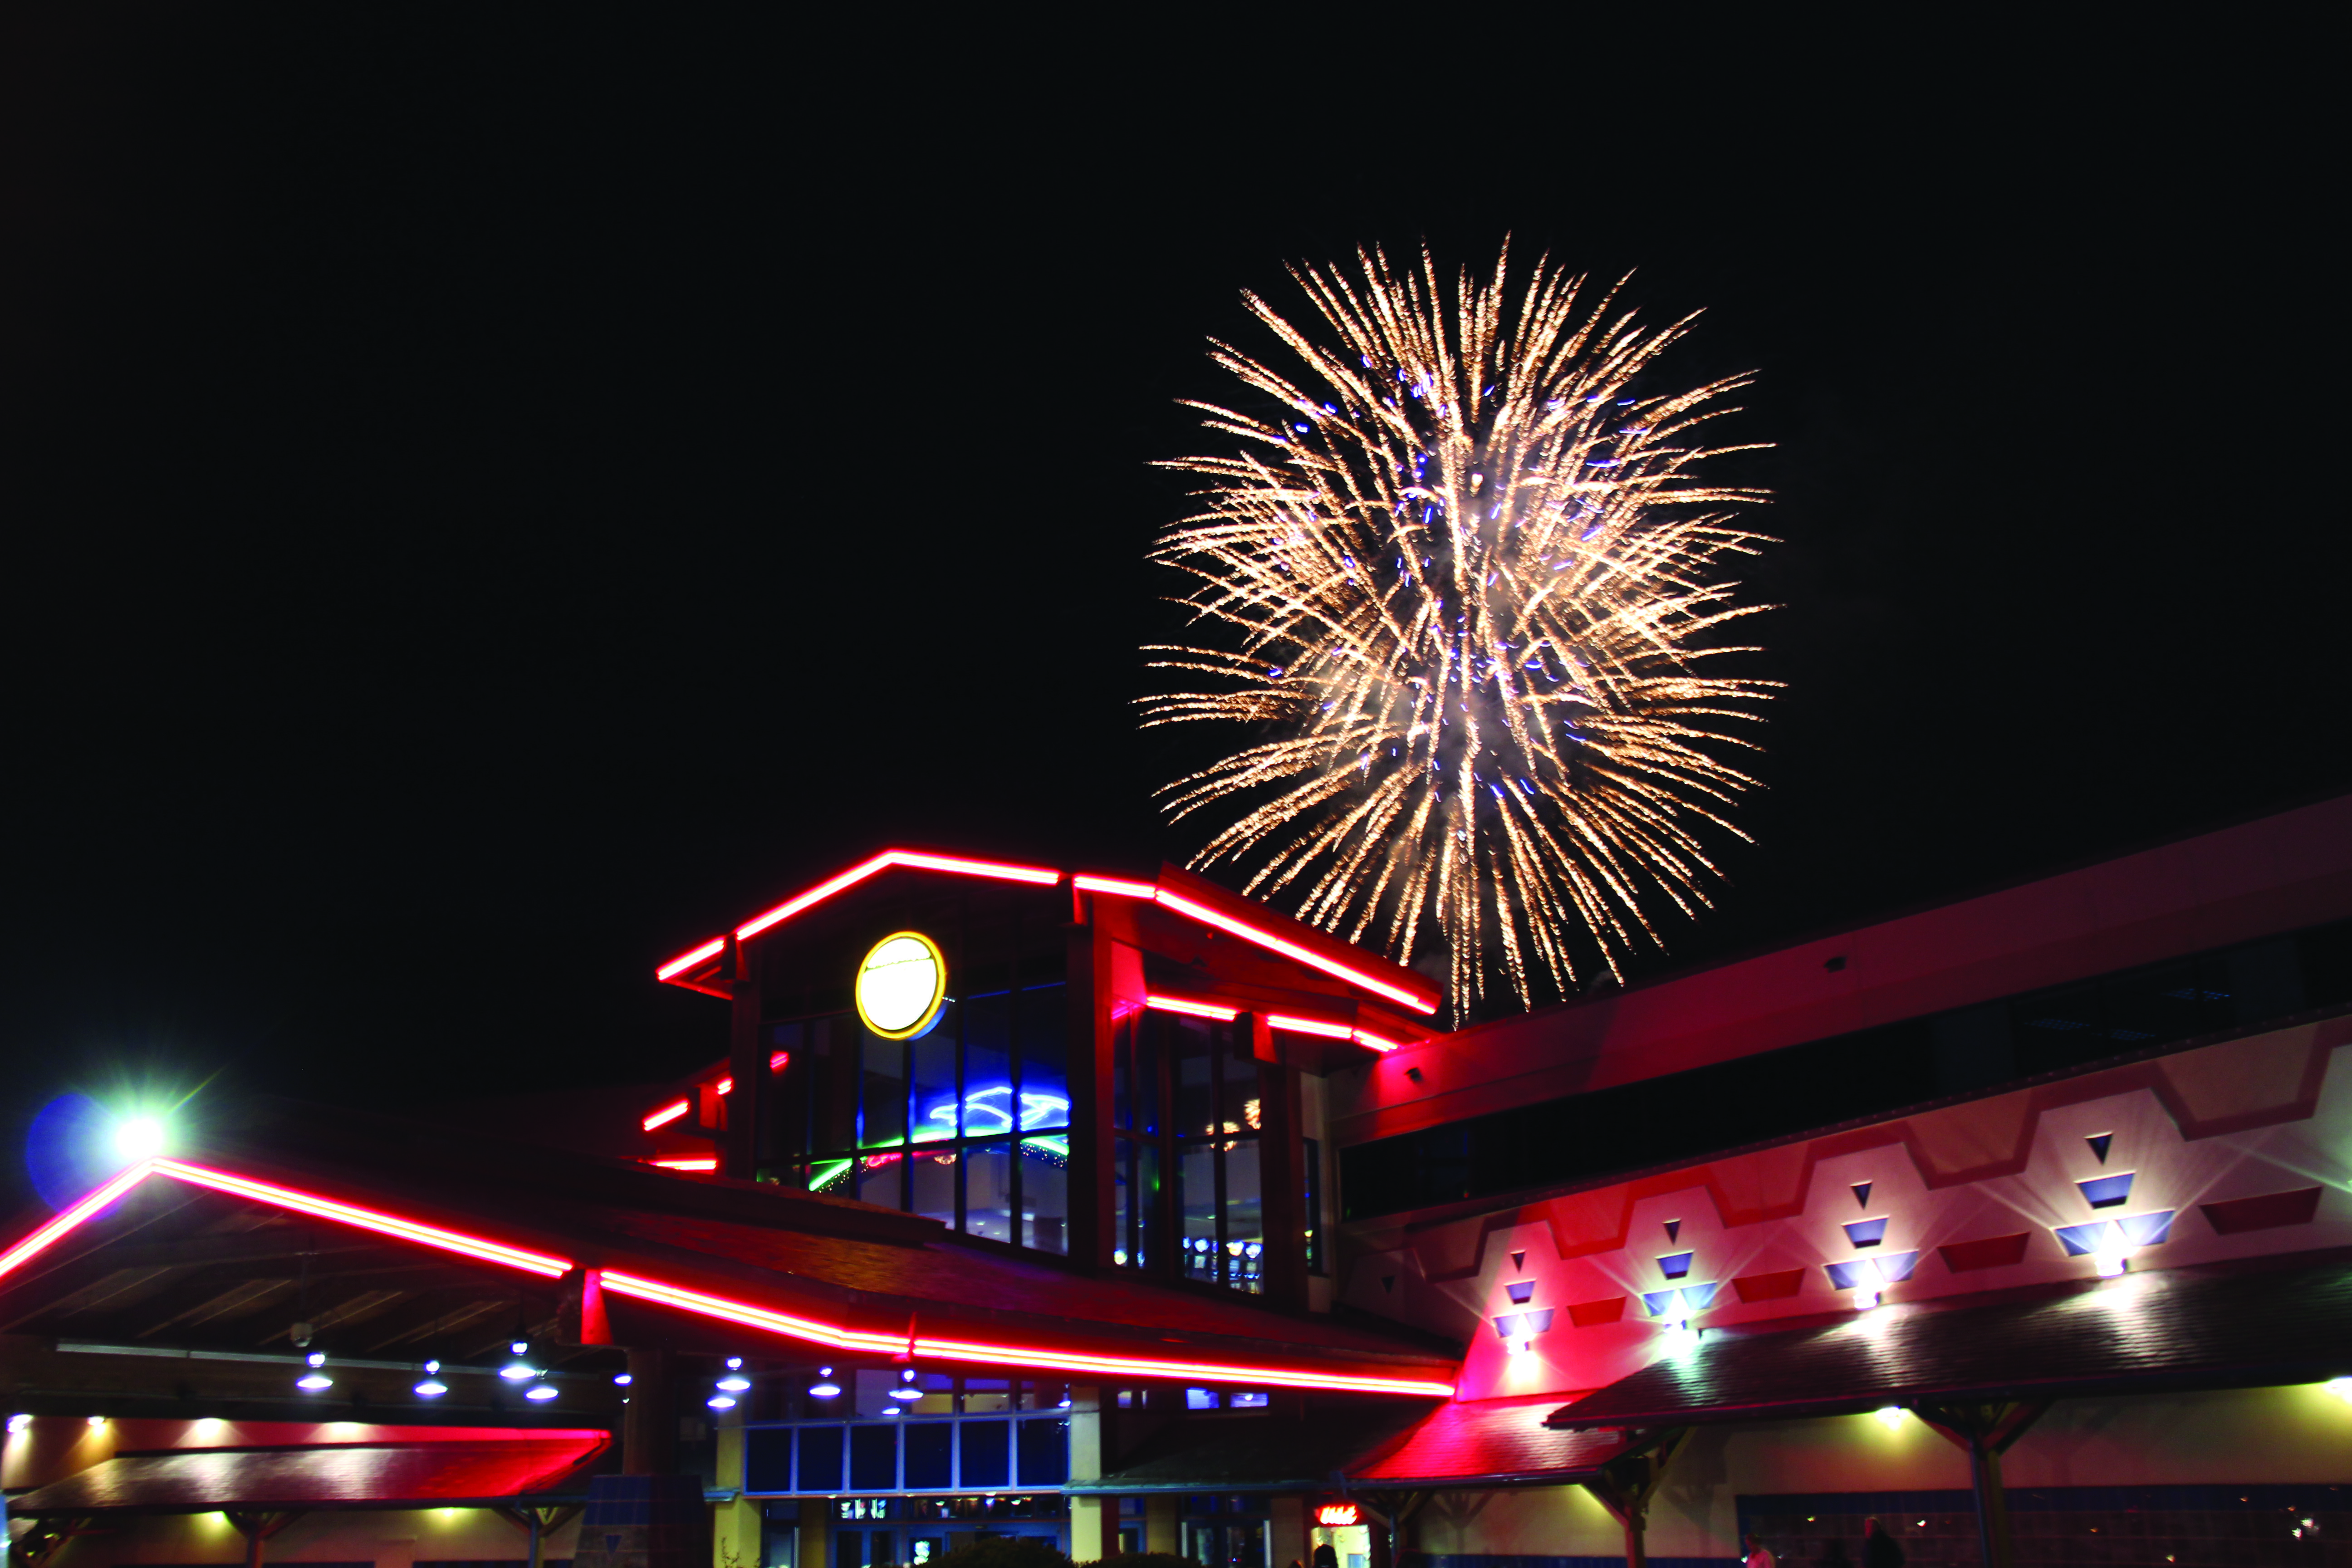 A fireworks display at the Chinook Winds Casino Resort lights up the night.